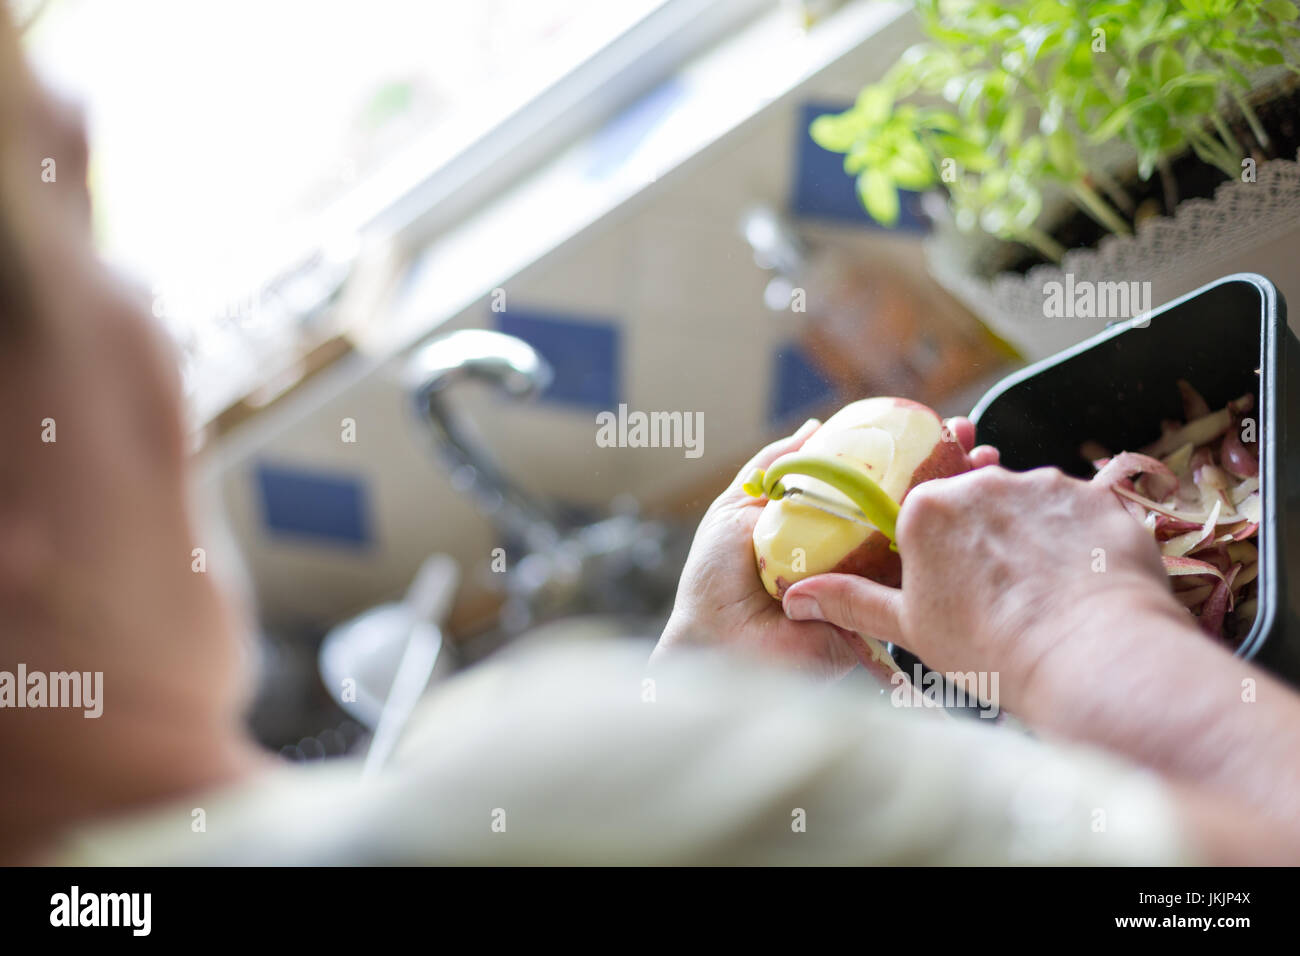 Senior woman peeling red potatoes, preparing food. Horizontal orientation with selective focus on potatoe and peeler. - Stock Image